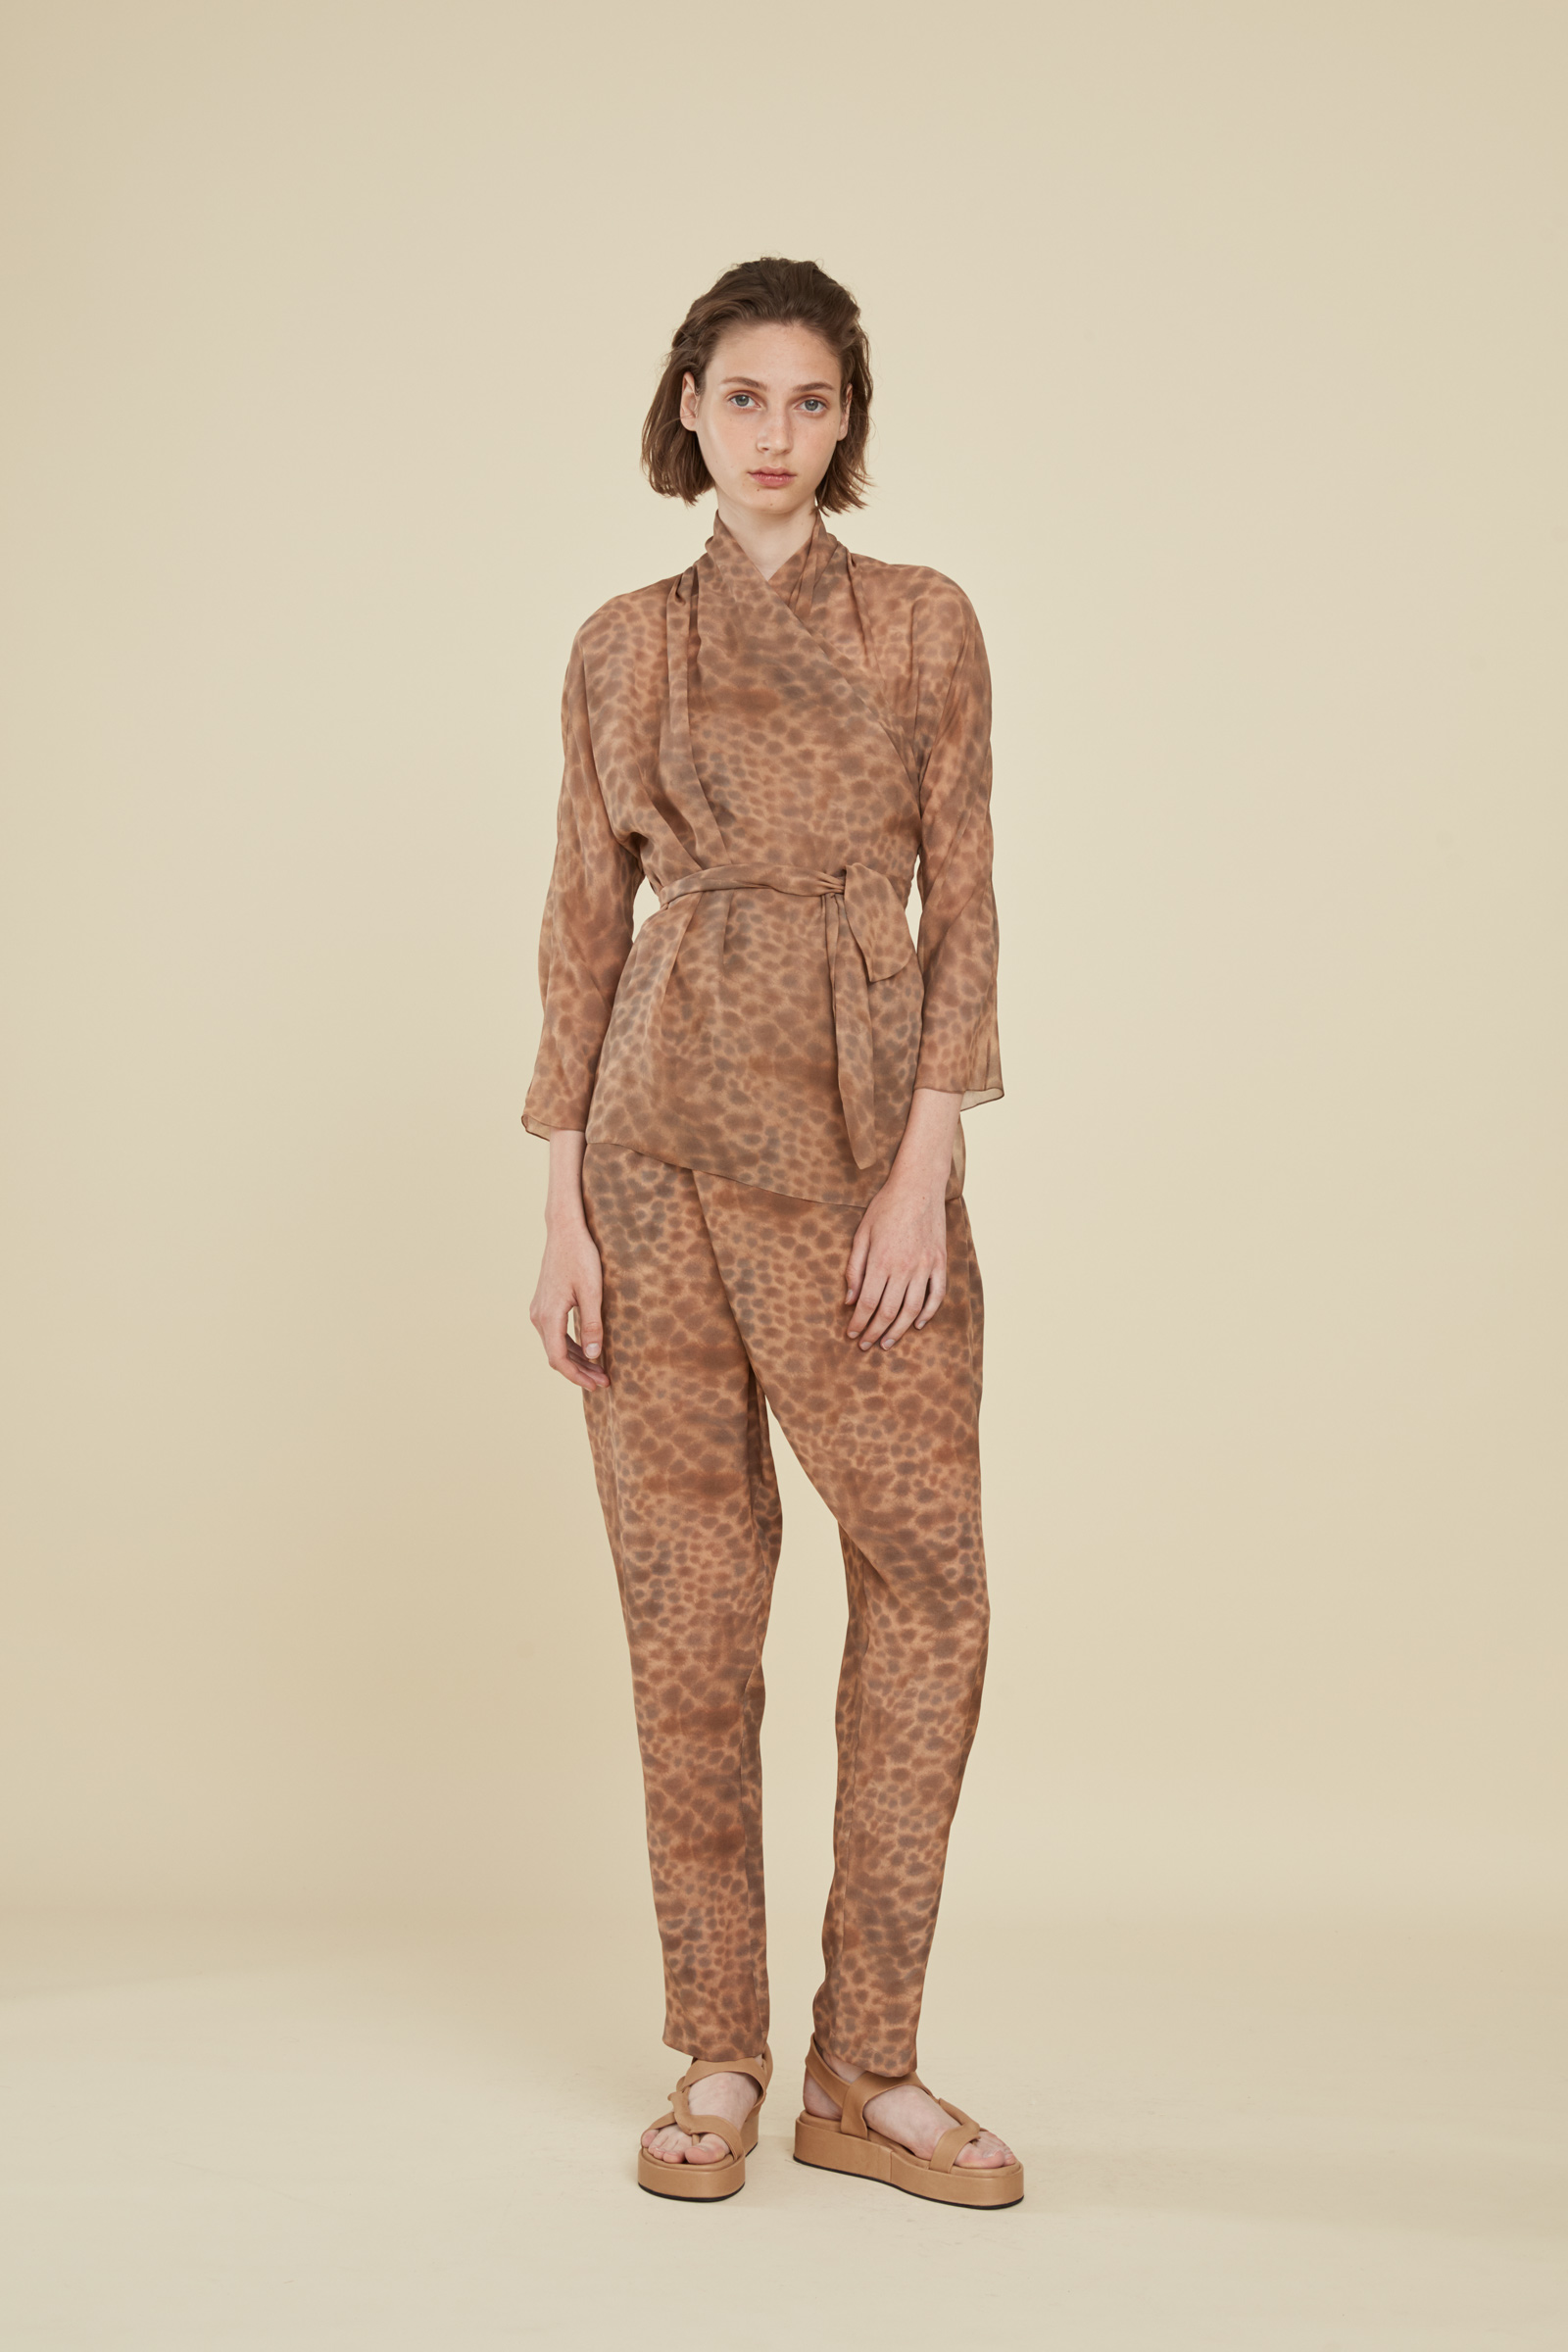 CHEETAH PRINTED SILK PANTS - Cortana